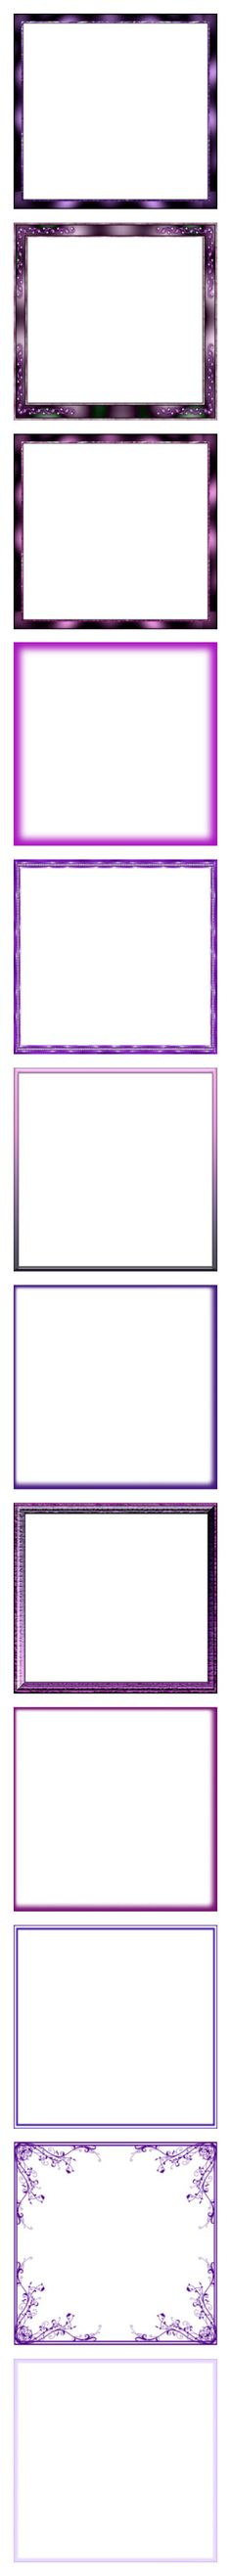 """""""Pink, Red, and Purple Frames"""" by funkyjunkygypsy ❤ liked on Polyvore featuring frames, borders, picture frame, frame, frame tube, okviri, square frame, backgrounds, filler and pattern"""